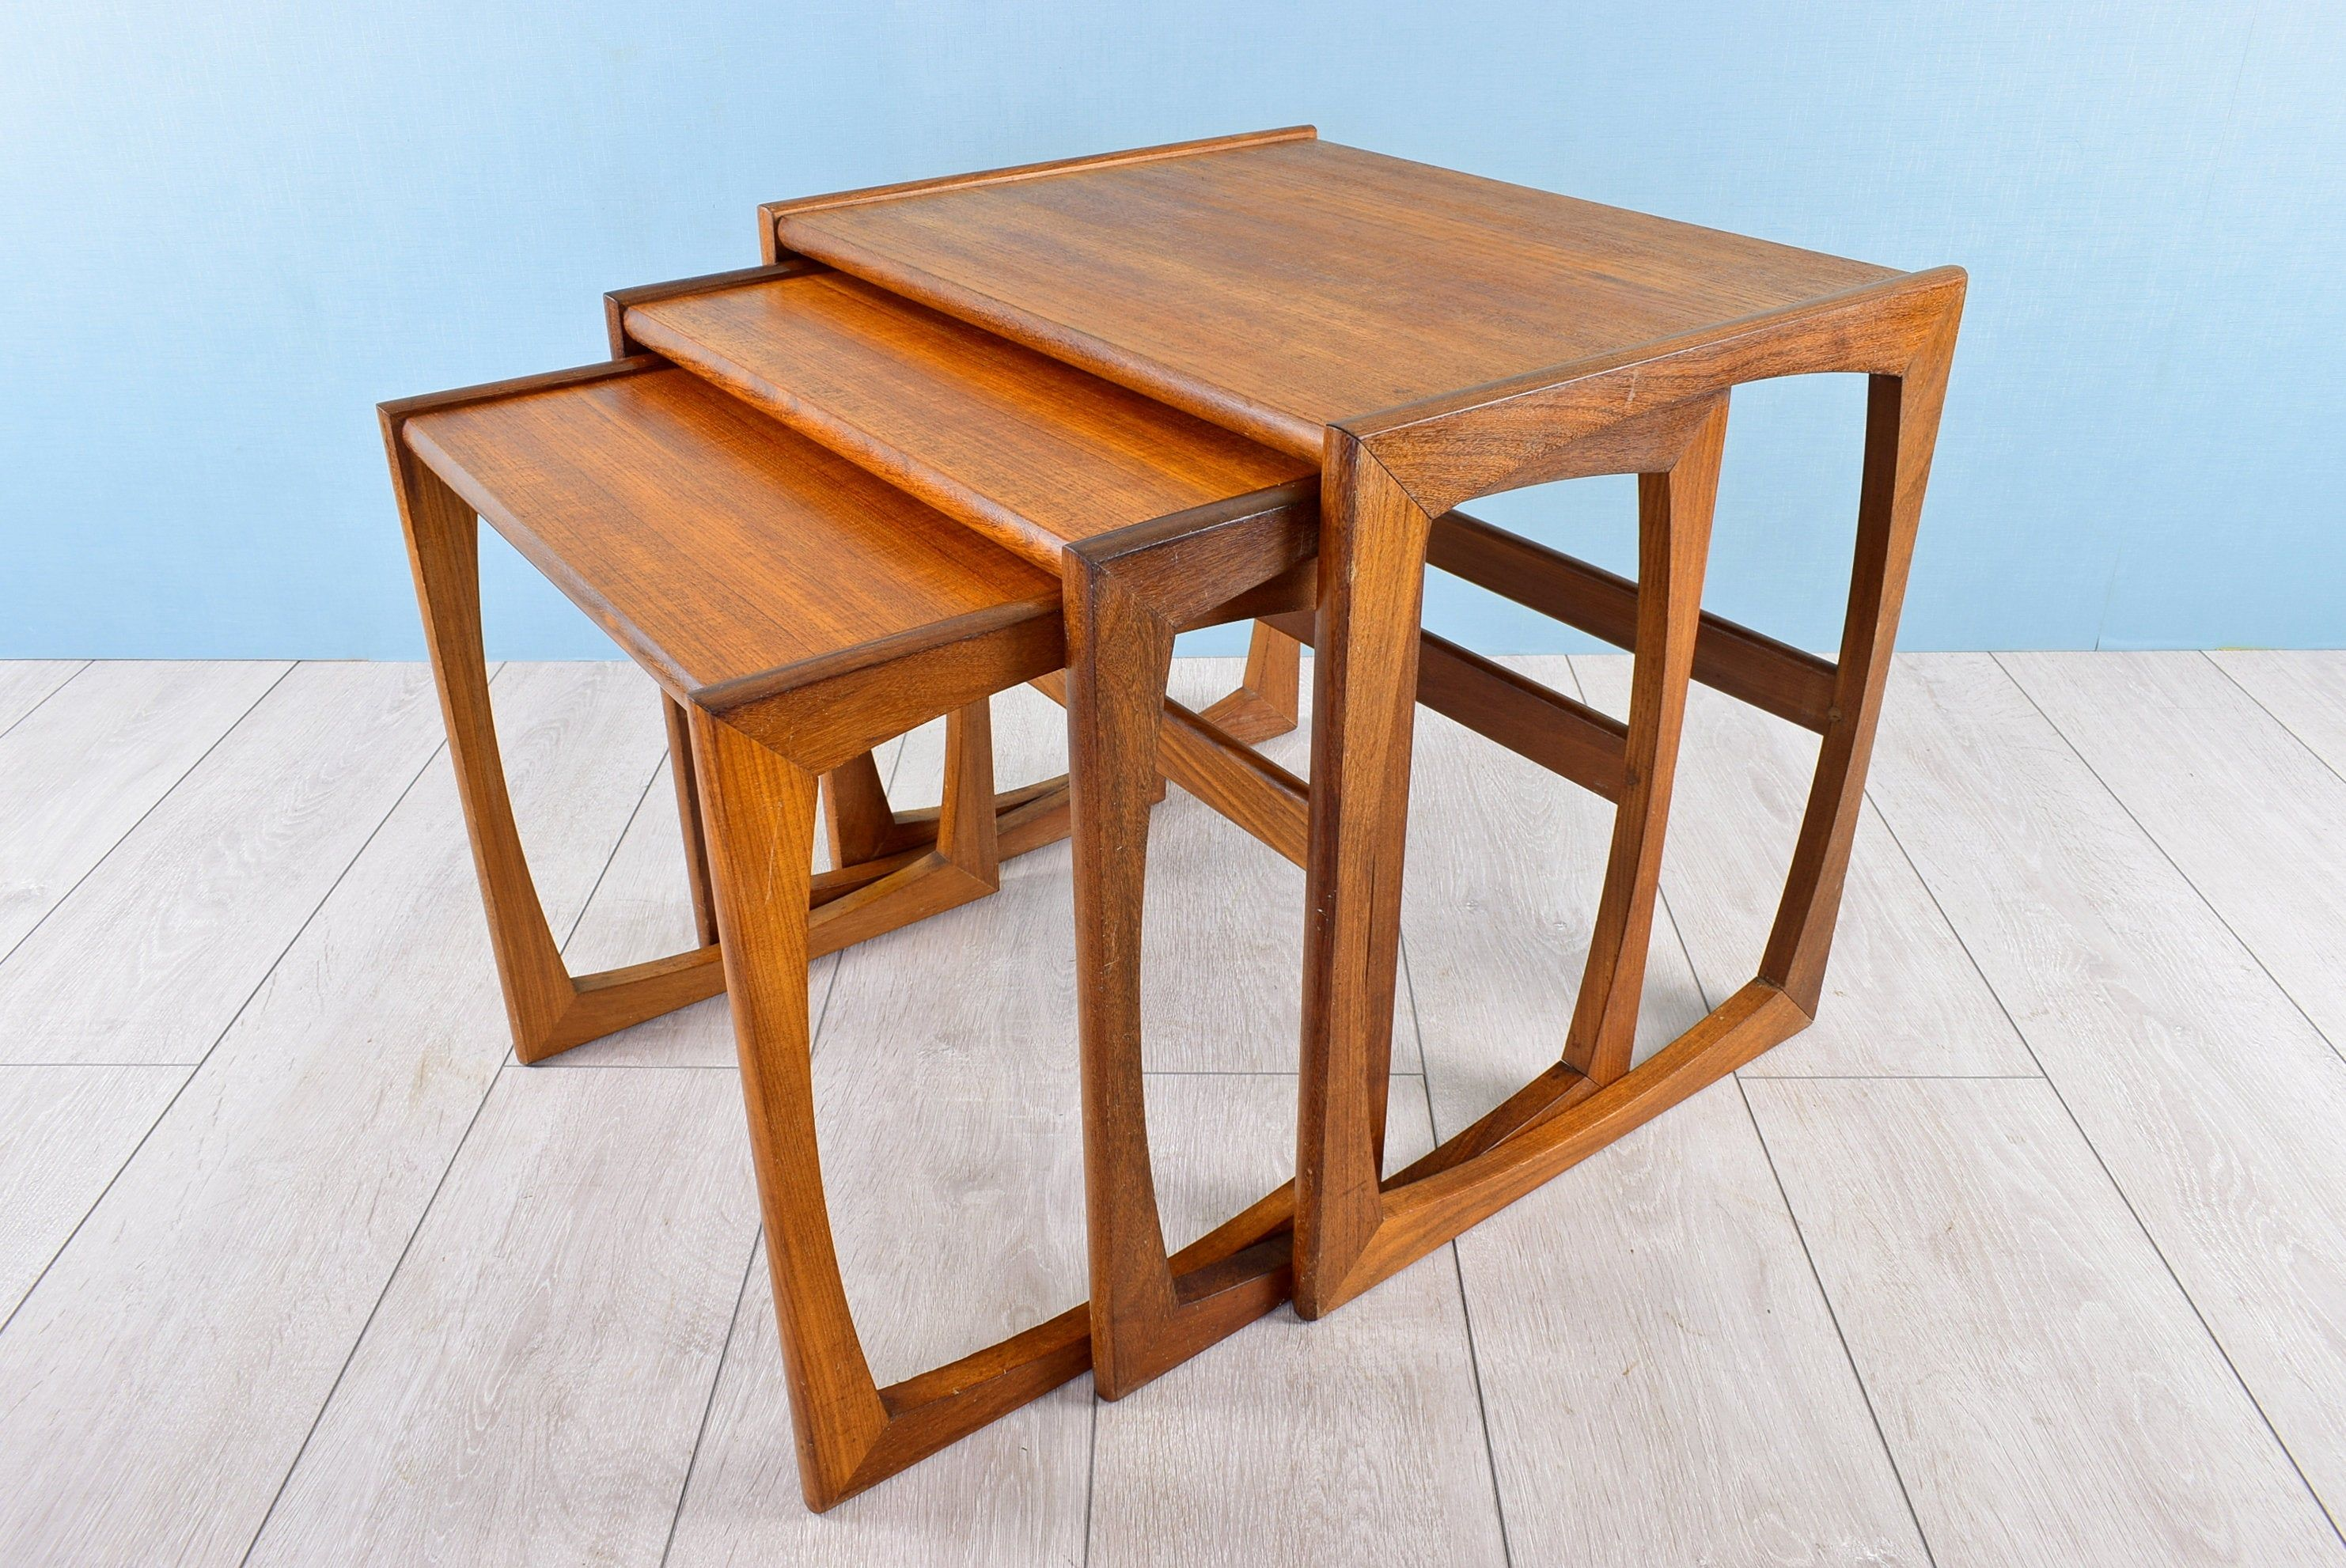 G Plan Quadrille Nest Of 3 Tables Vintage Set Gigogne Salon Side Nesting Furniture In Teak And Afrormosia Danish Modern Style Uk 1960s Danish Modern British Furniture Danish Furniture